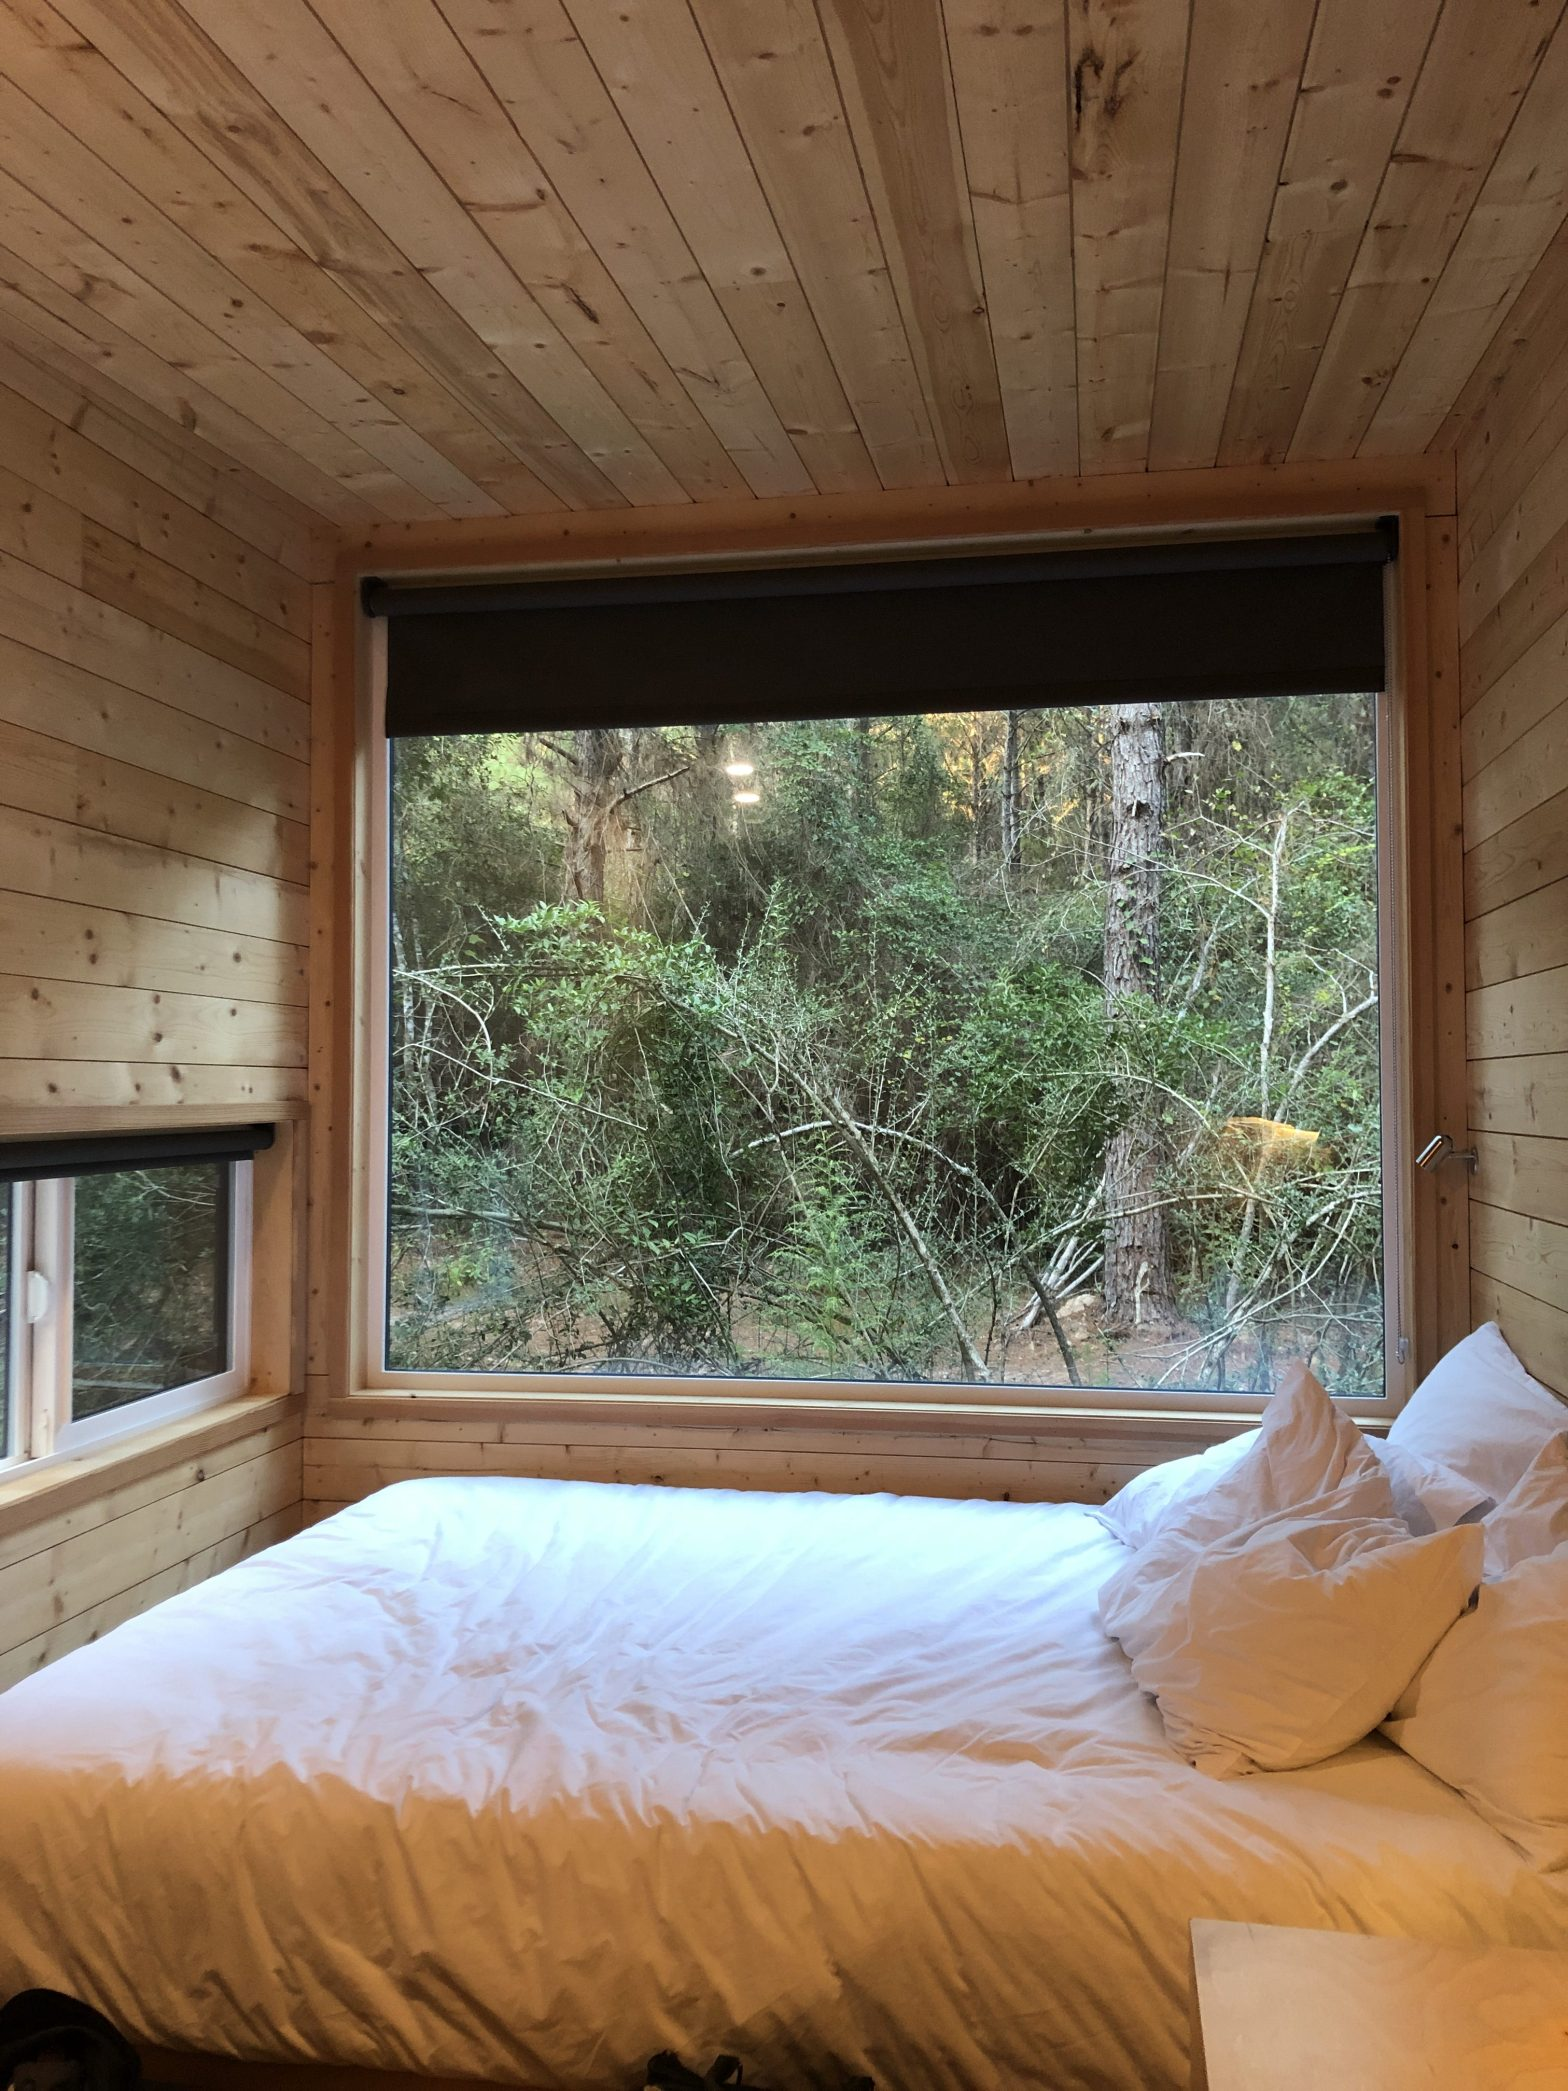 The big window gives you the best view inside the cabin.